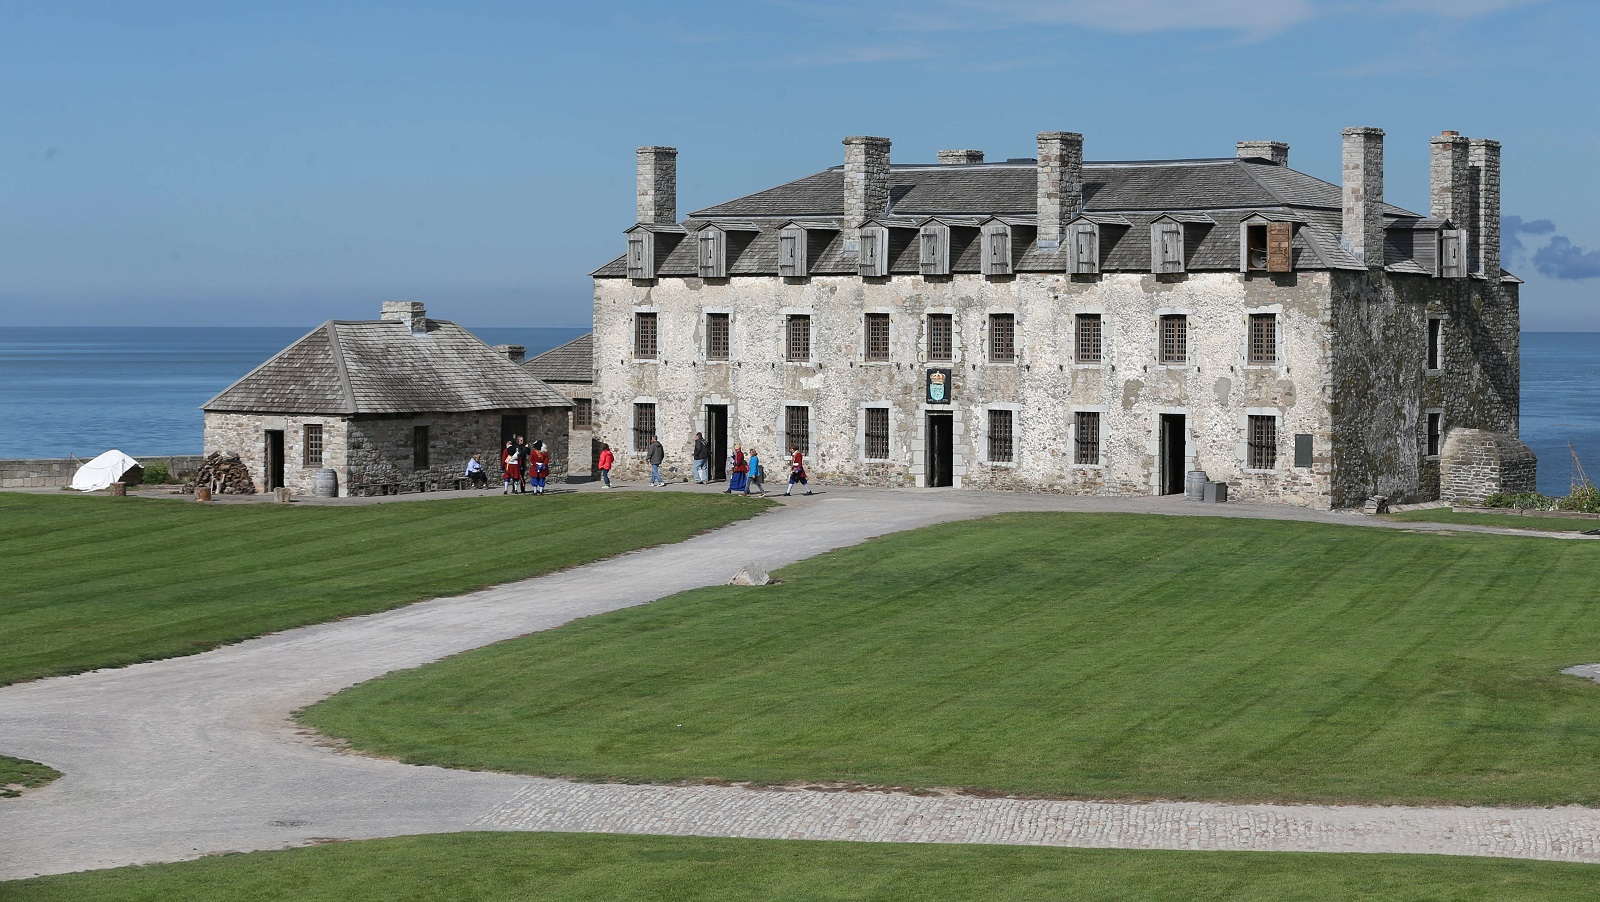 The French Castle at Old Fort Niagara. (Sharon Cantillon/News file photo)